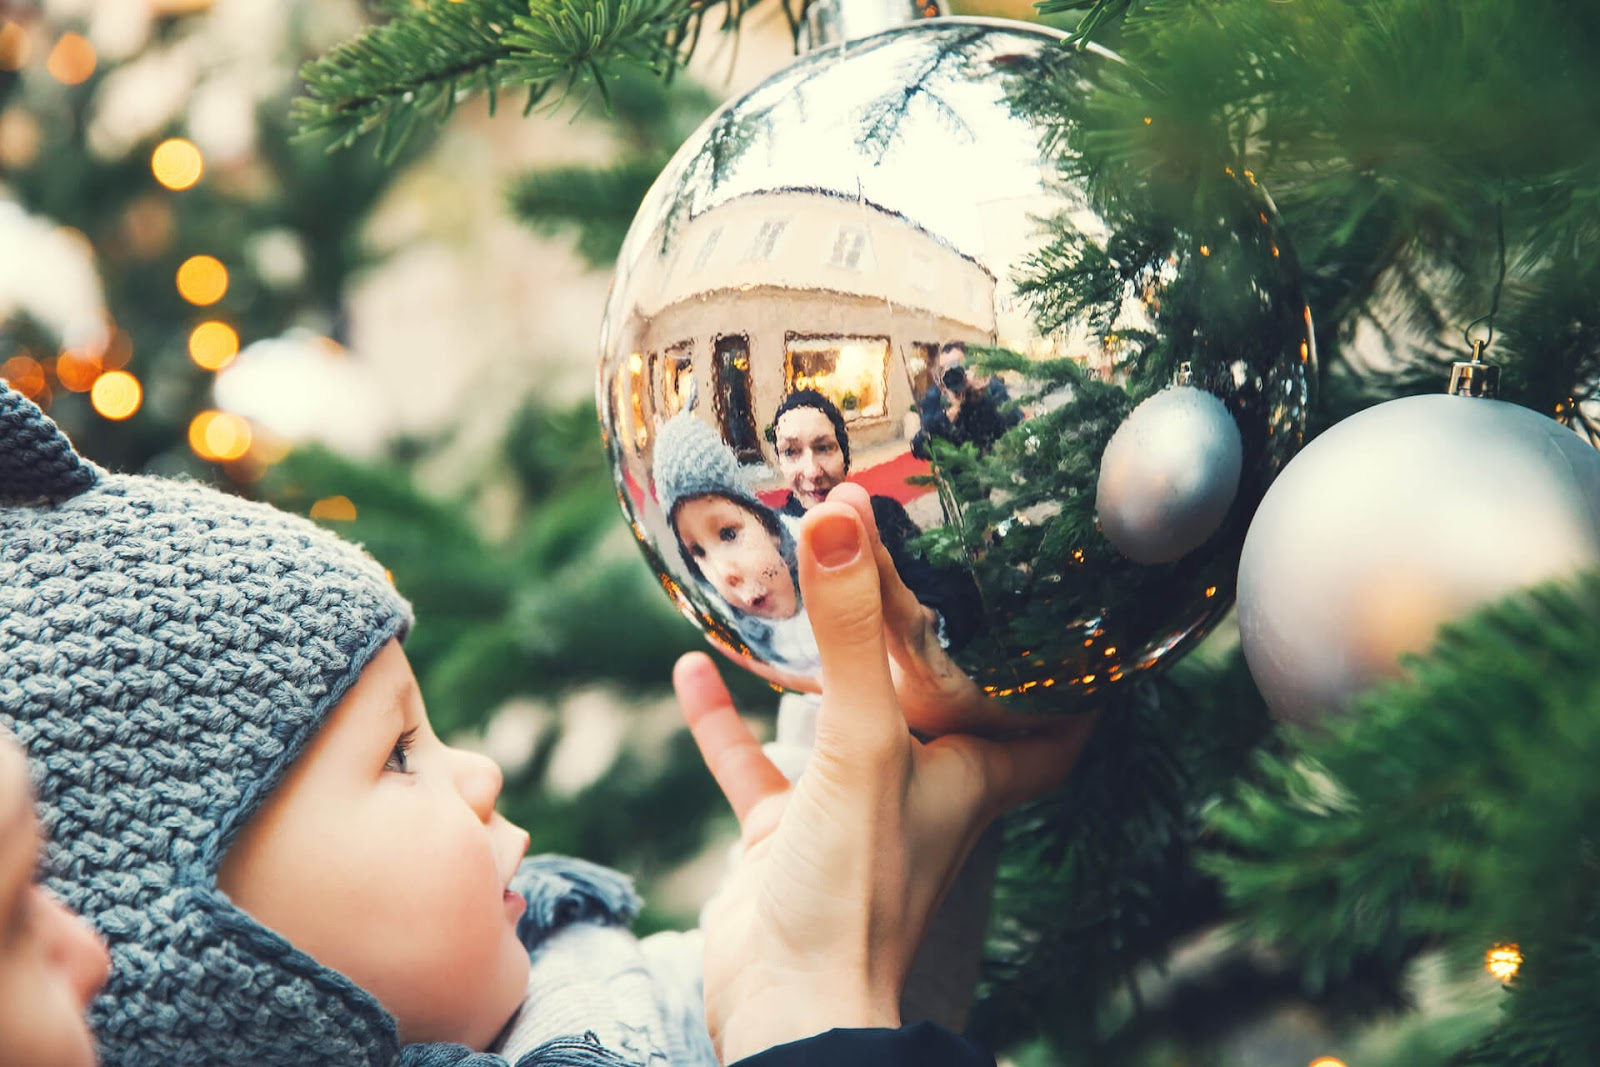 Baby looking at giant ornament on Christmas tree